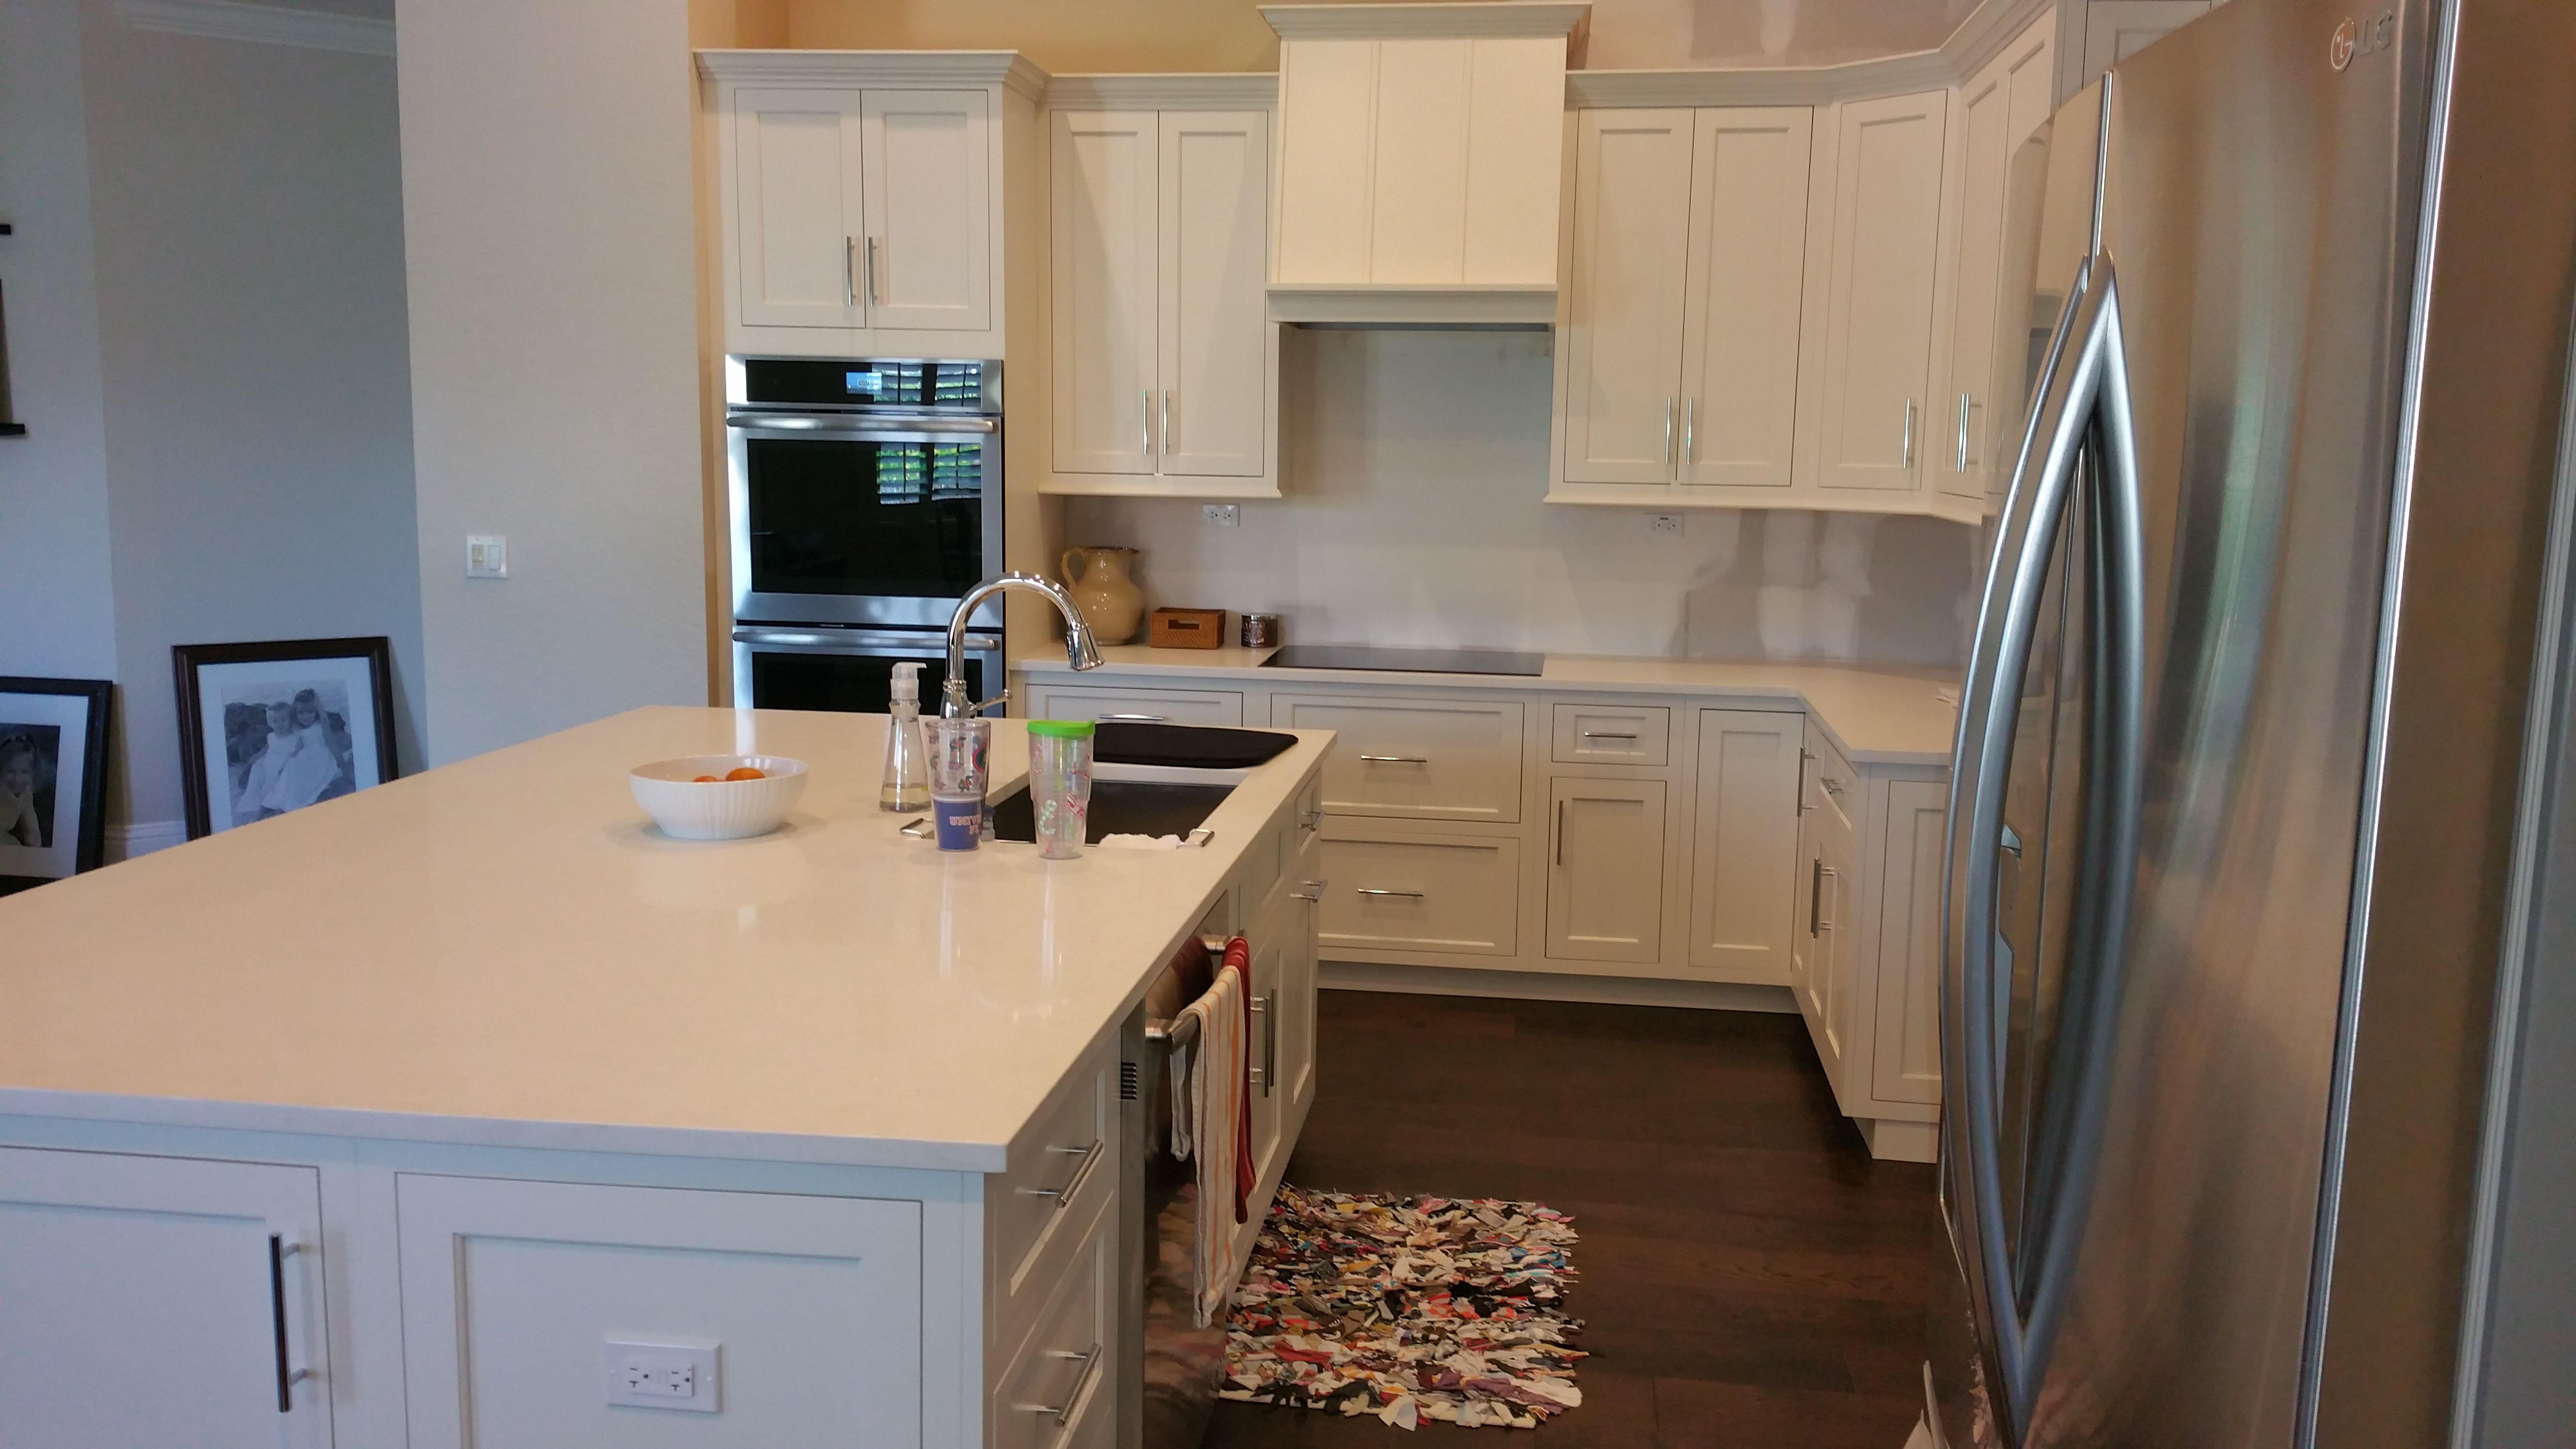 Great Use Of Space With This Immaculate Island Island Kitchen Storage Cabinets Flush Shaker Customcabinets Kitchen Beautiful Kitchens Custom Cabinets